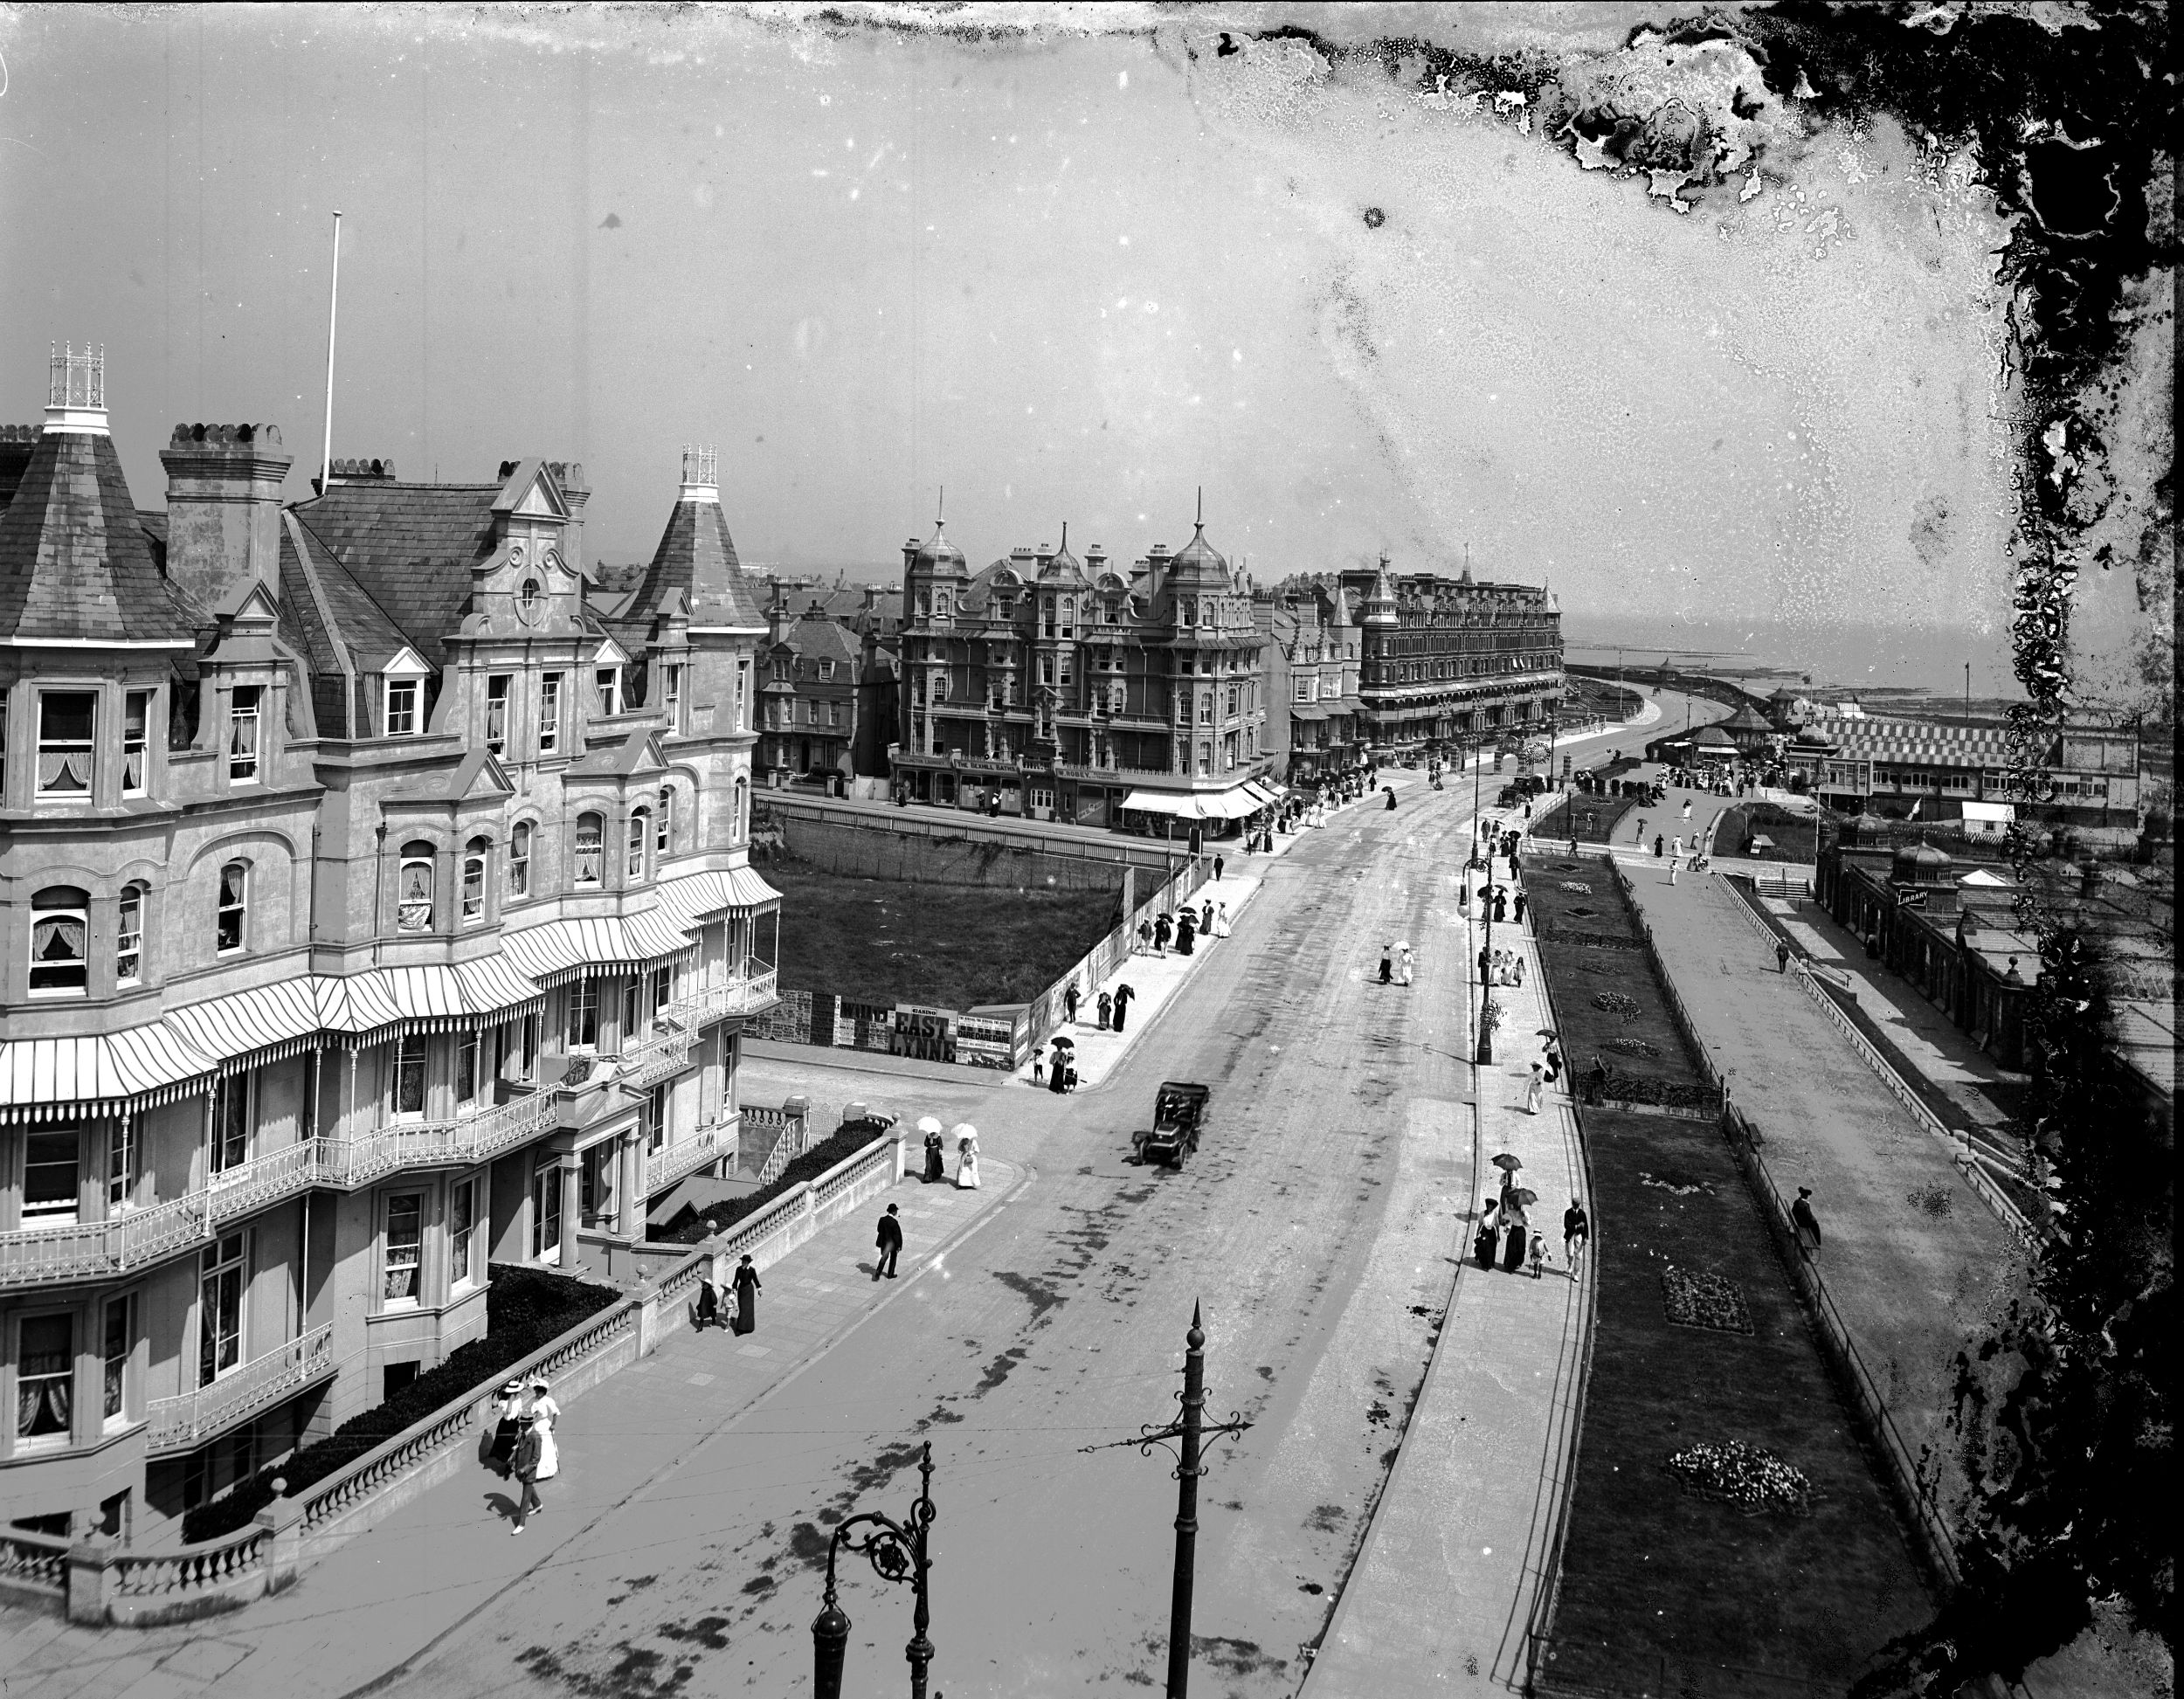 Bexhill's Heritage